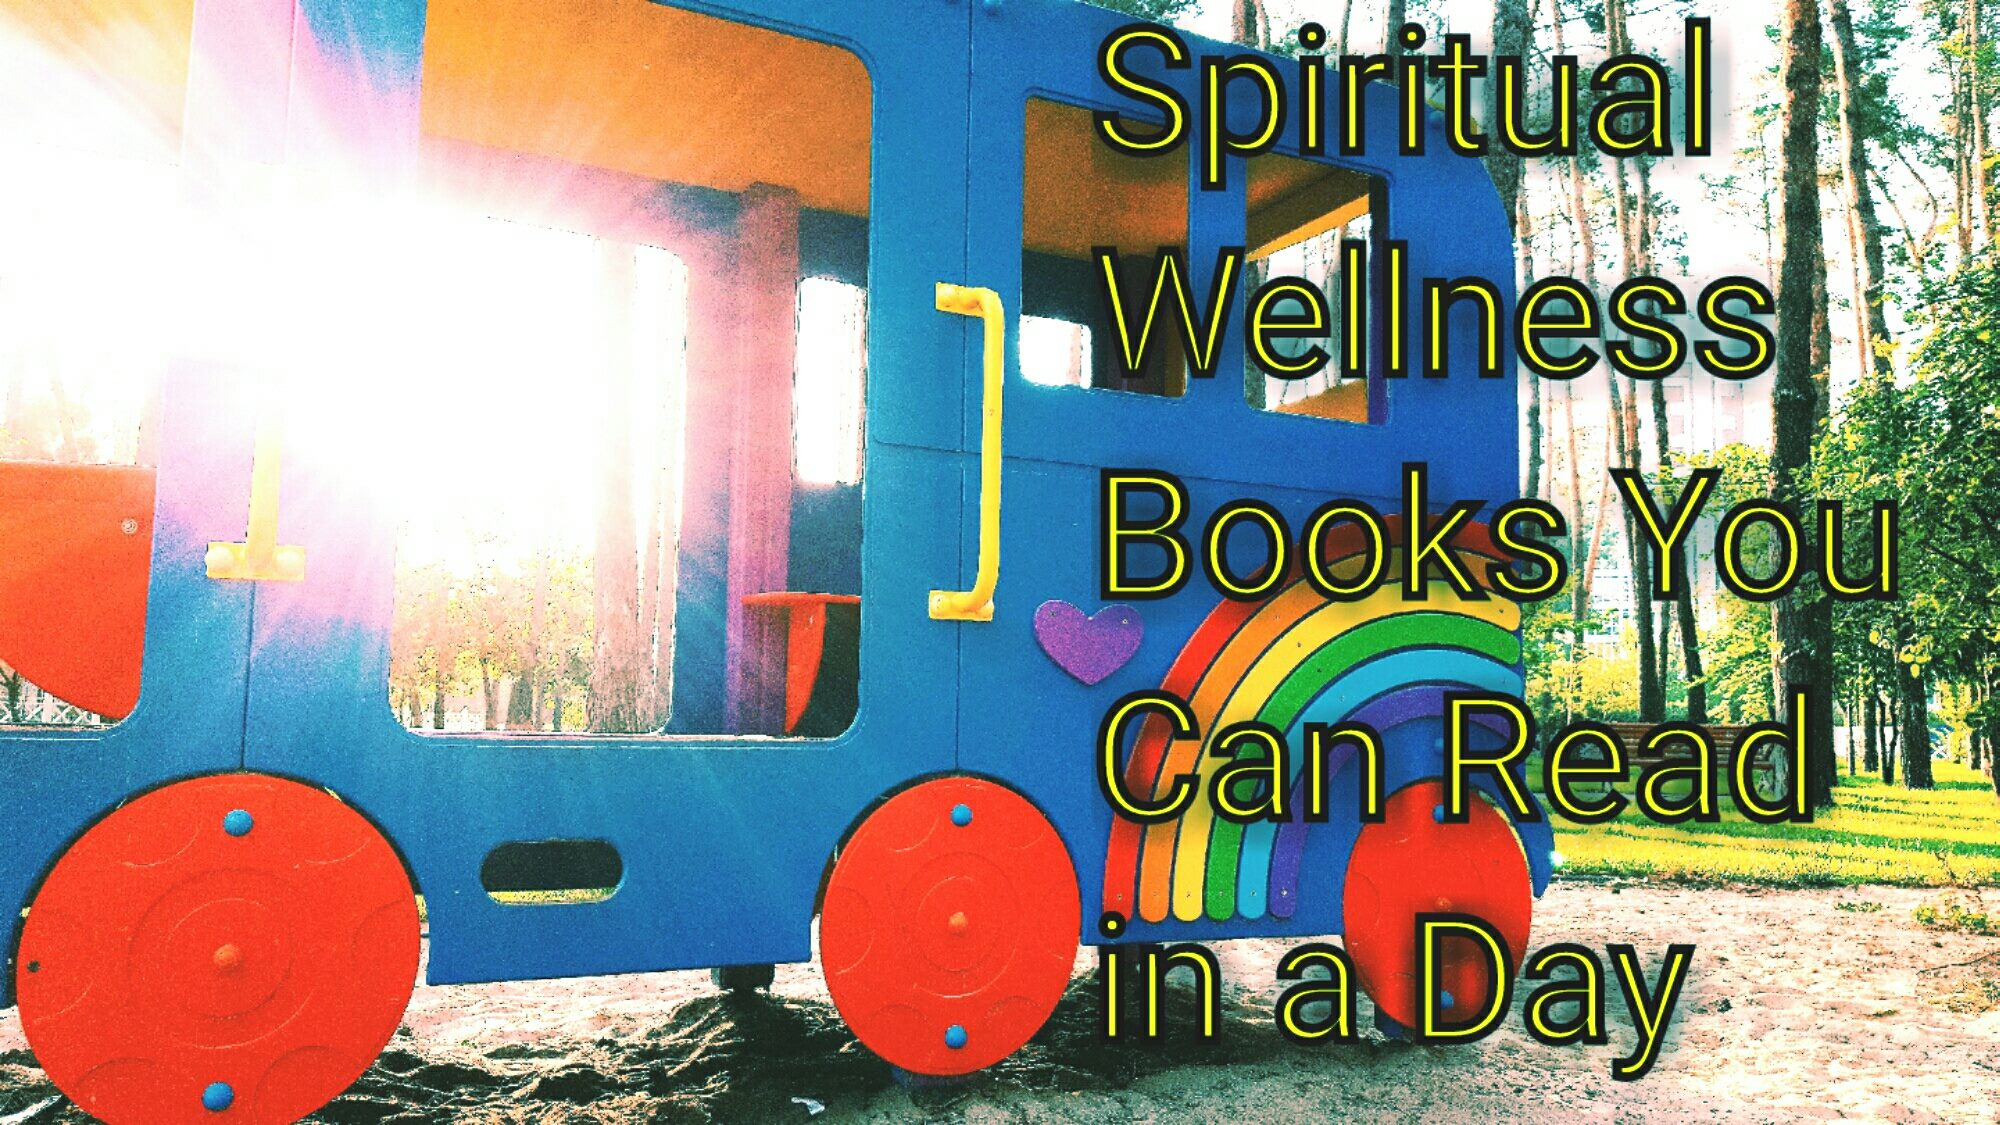 Spiritual Wellness Books